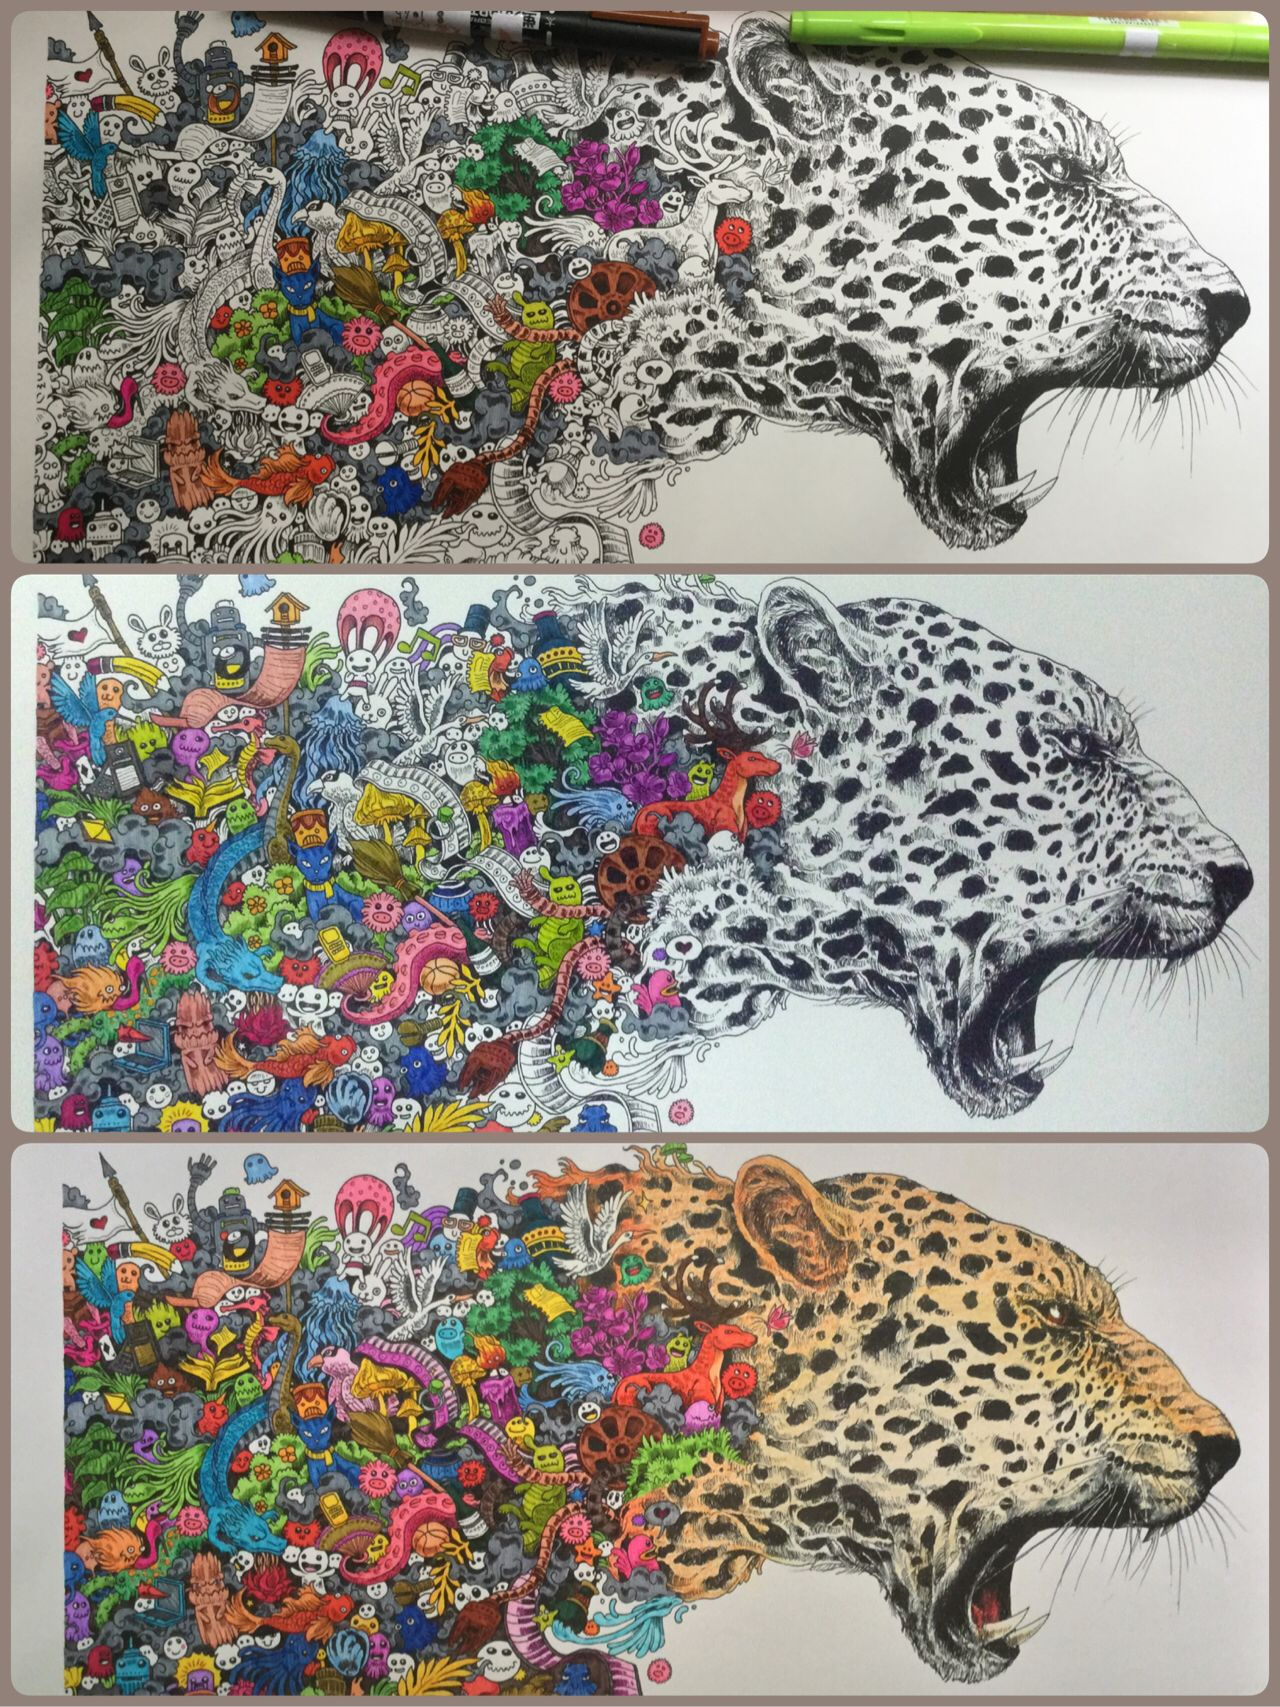 Cheetah From Animorphia Coloring Book Illustrated By Kerby Rosanes